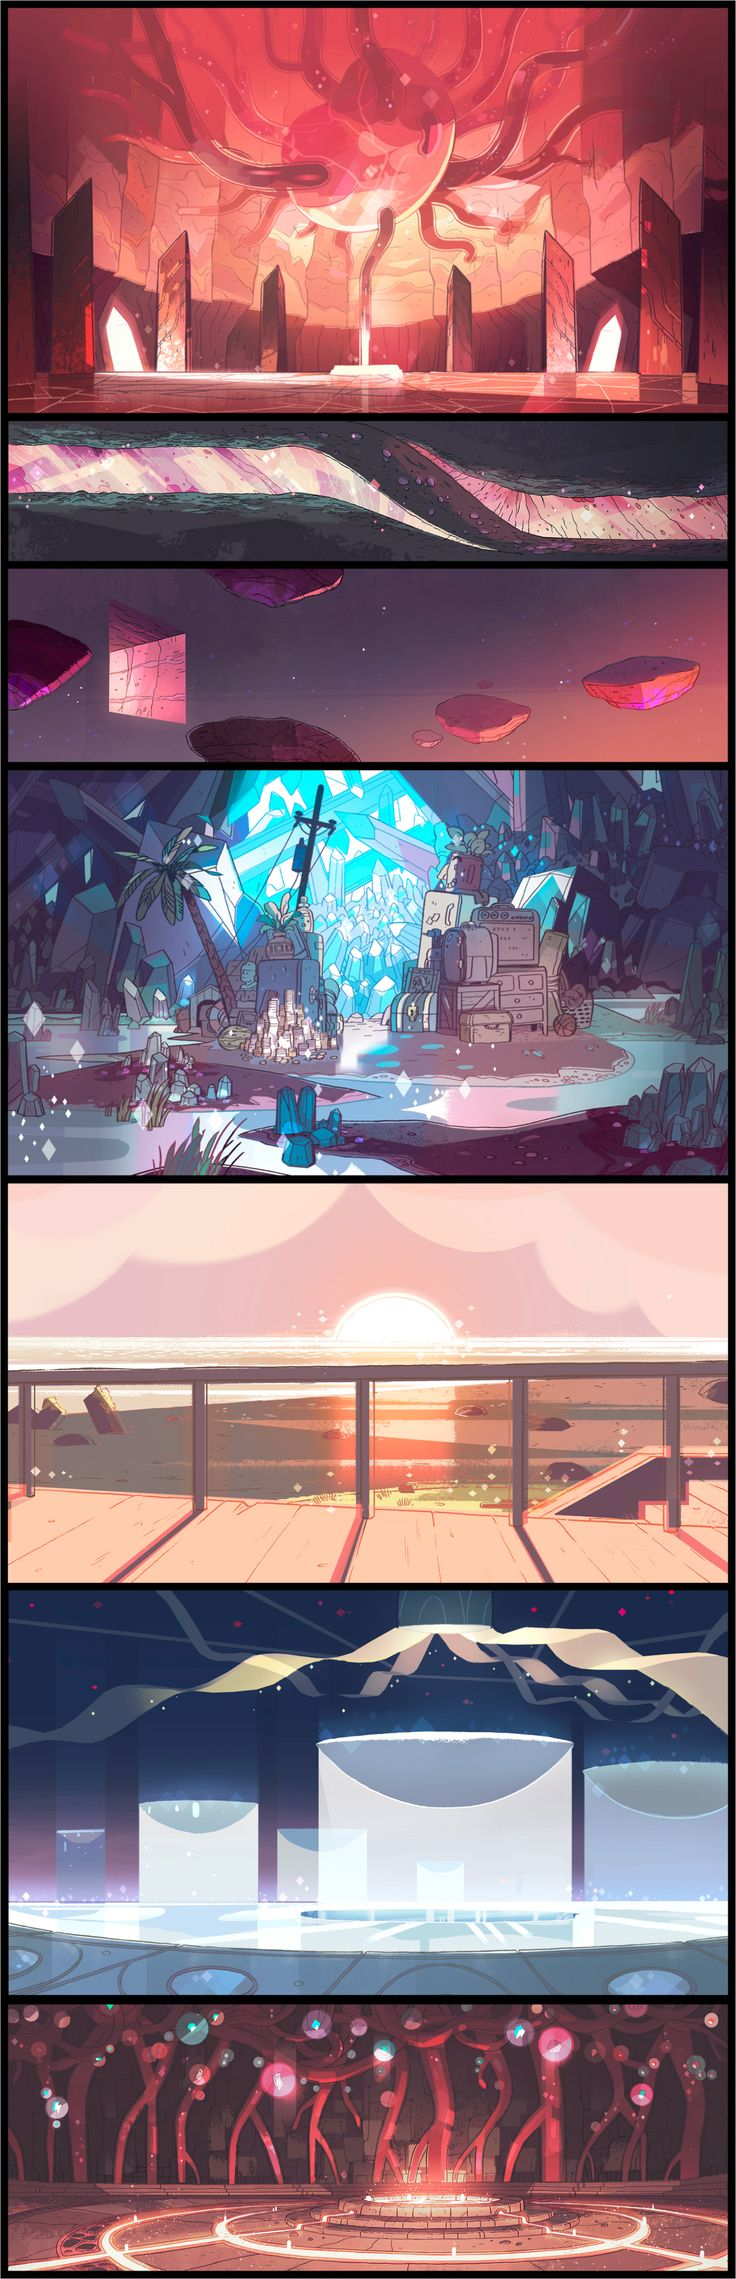 "A selection of backgrounds from the Steven Universe episode: ""Together Breakfast"". Direction: Kevin Dart; Design: Sam Bosma, Emily Walus; Paint: Jasmin Lai, Elle Michalka."